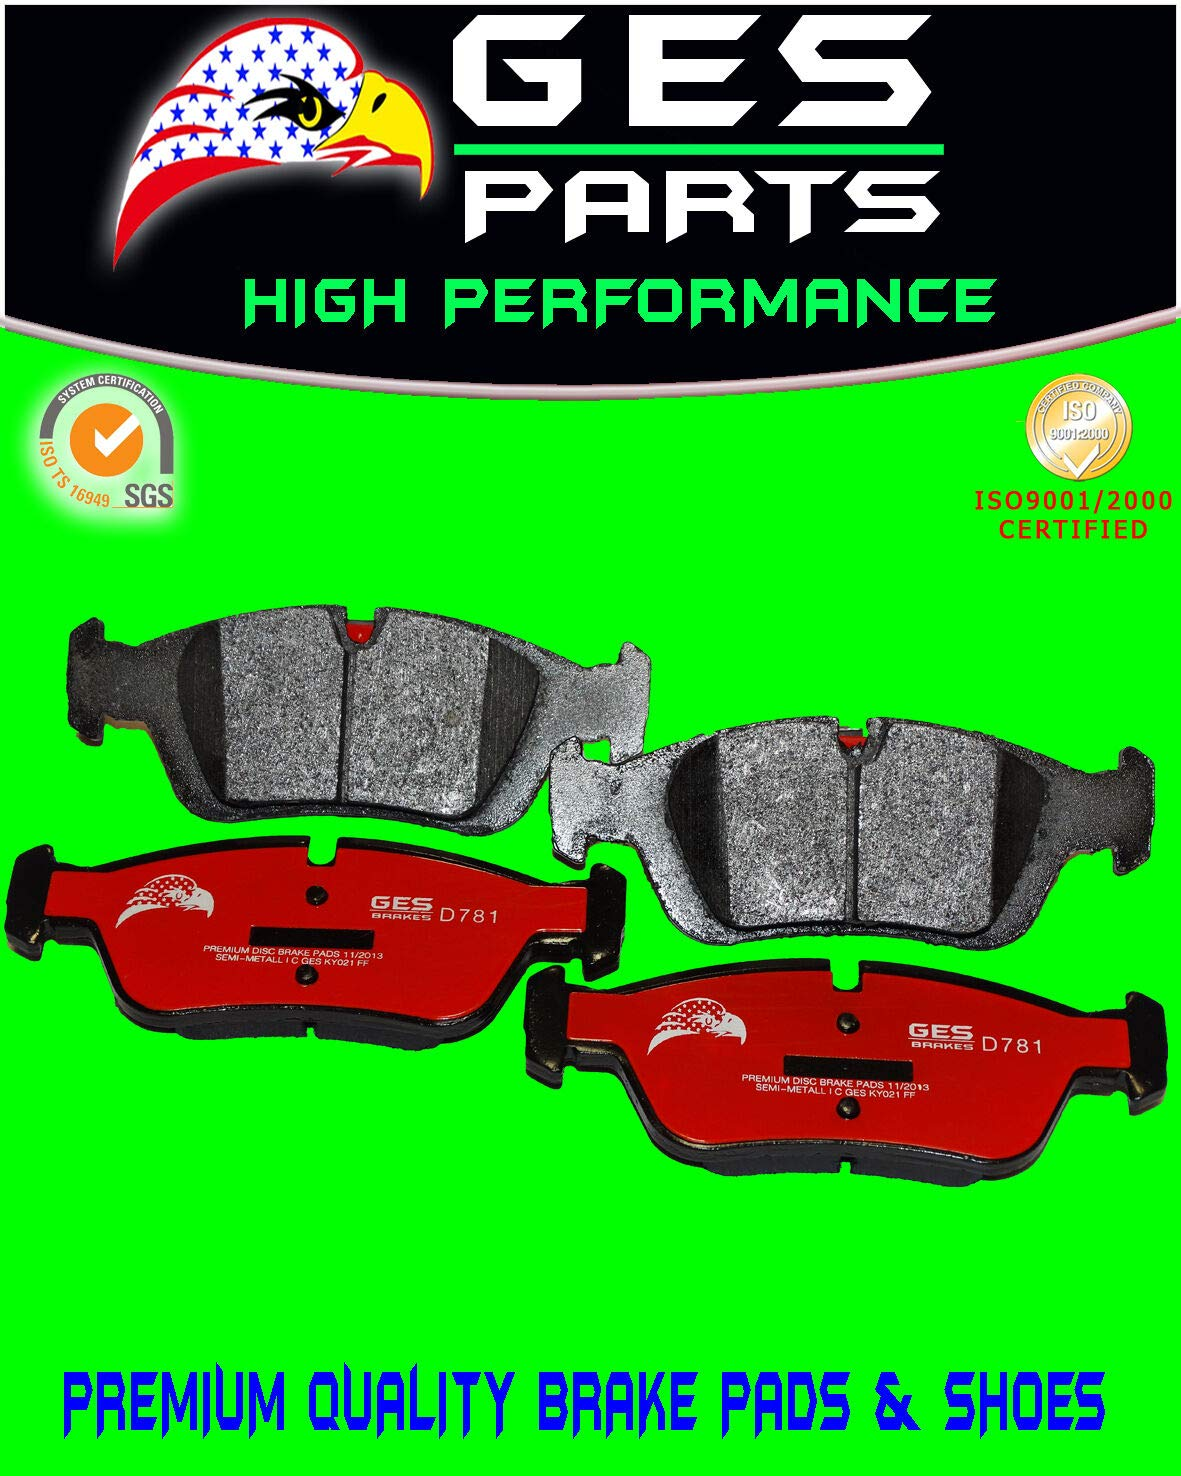 GES PARTS Front Brake Pad BMW 318i 318is 318ti 323Ci 323is 325Ci 325i 325is 325xi Z4 D781